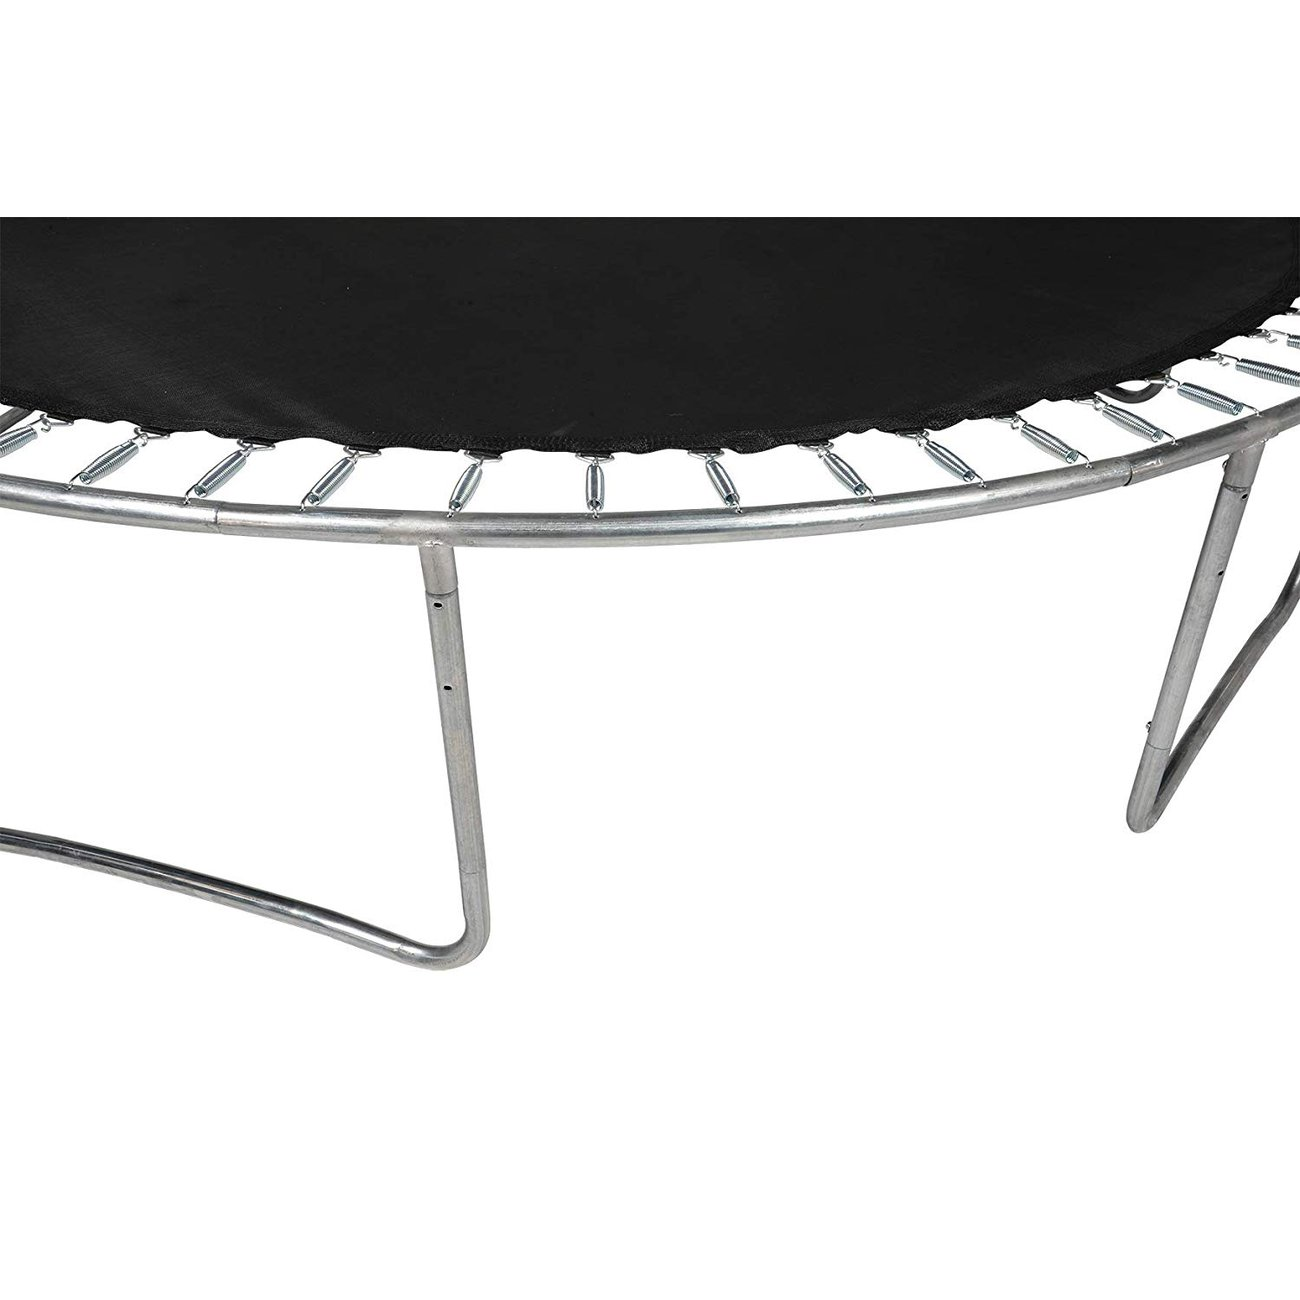 Table Jardin 10 Personnes Inspirant Trampoline De Jardin Diam¨tre 12ft 366 Cm Avec Filet Of 33 Inspirant Table Jardin 10 Personnes